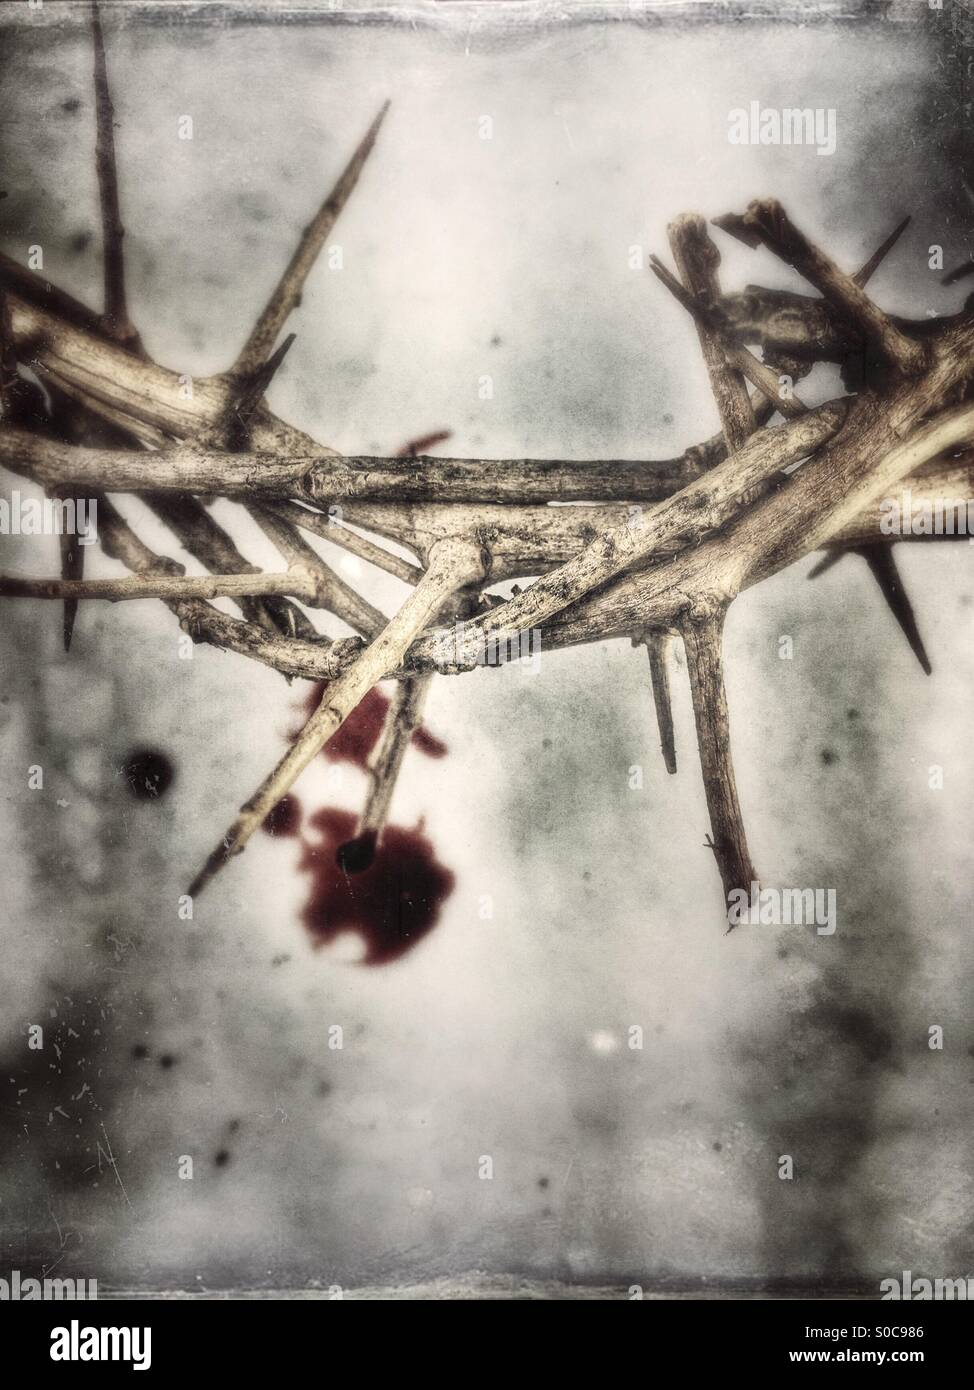 Crown of thorns with blood. - Stock Image